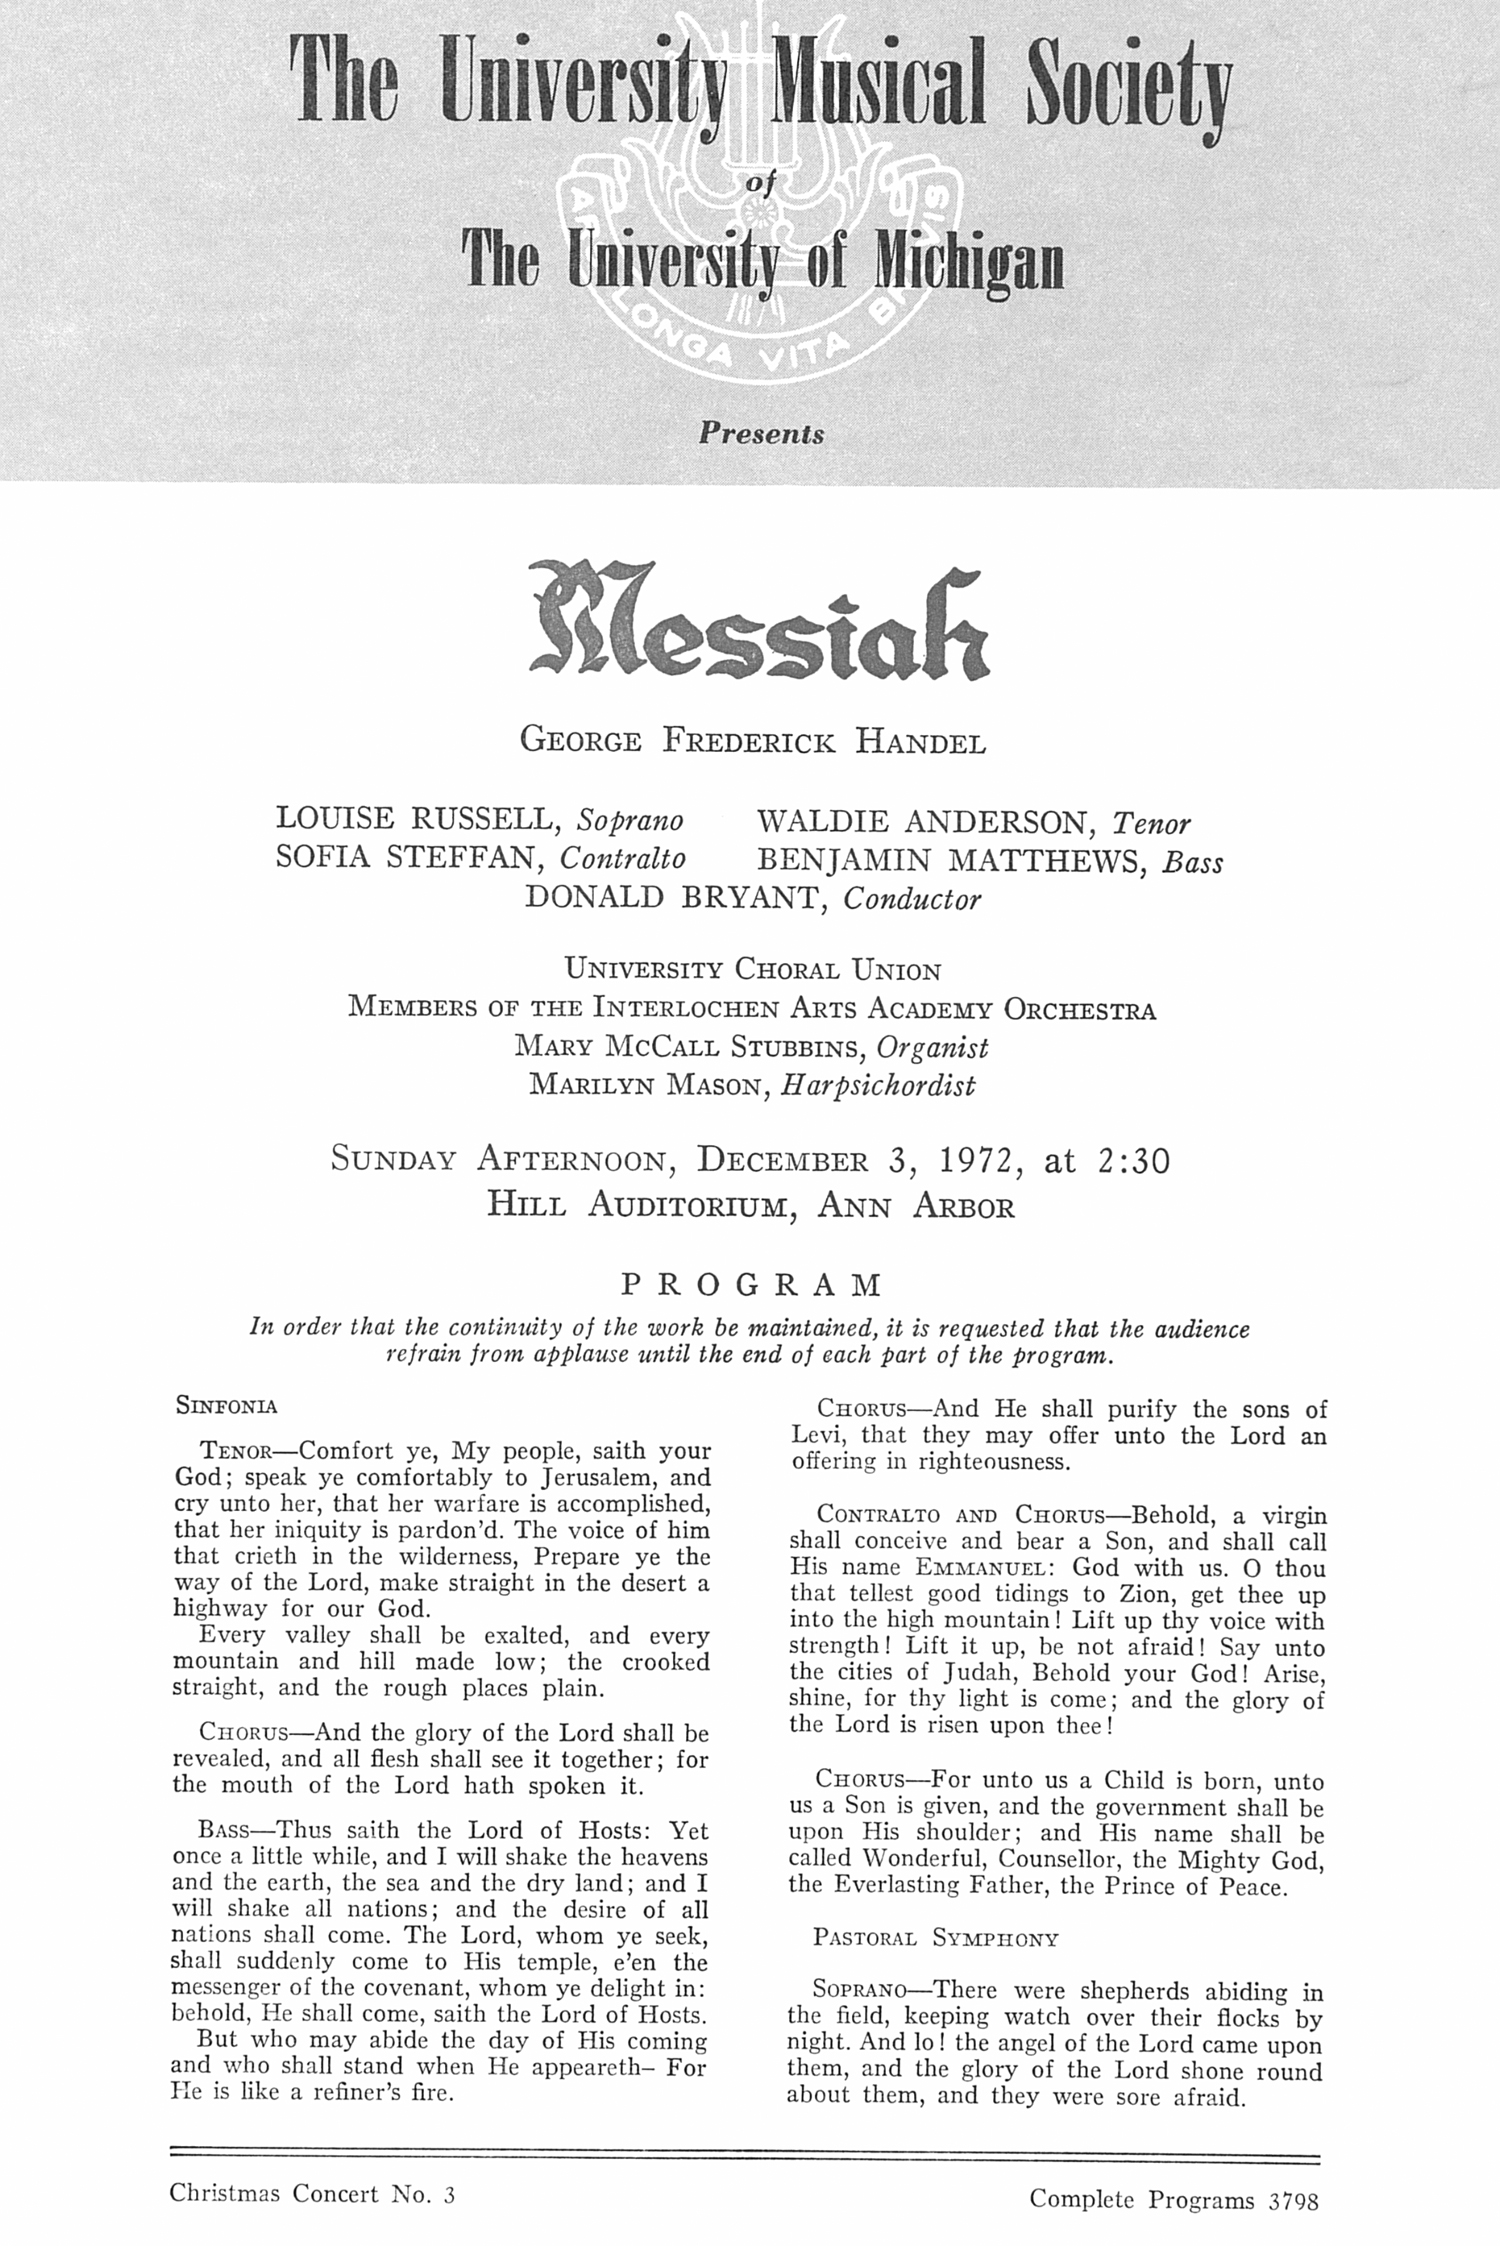 UMS Concert Program, December 3, 1972: Messiah -- George Frederick Handel image